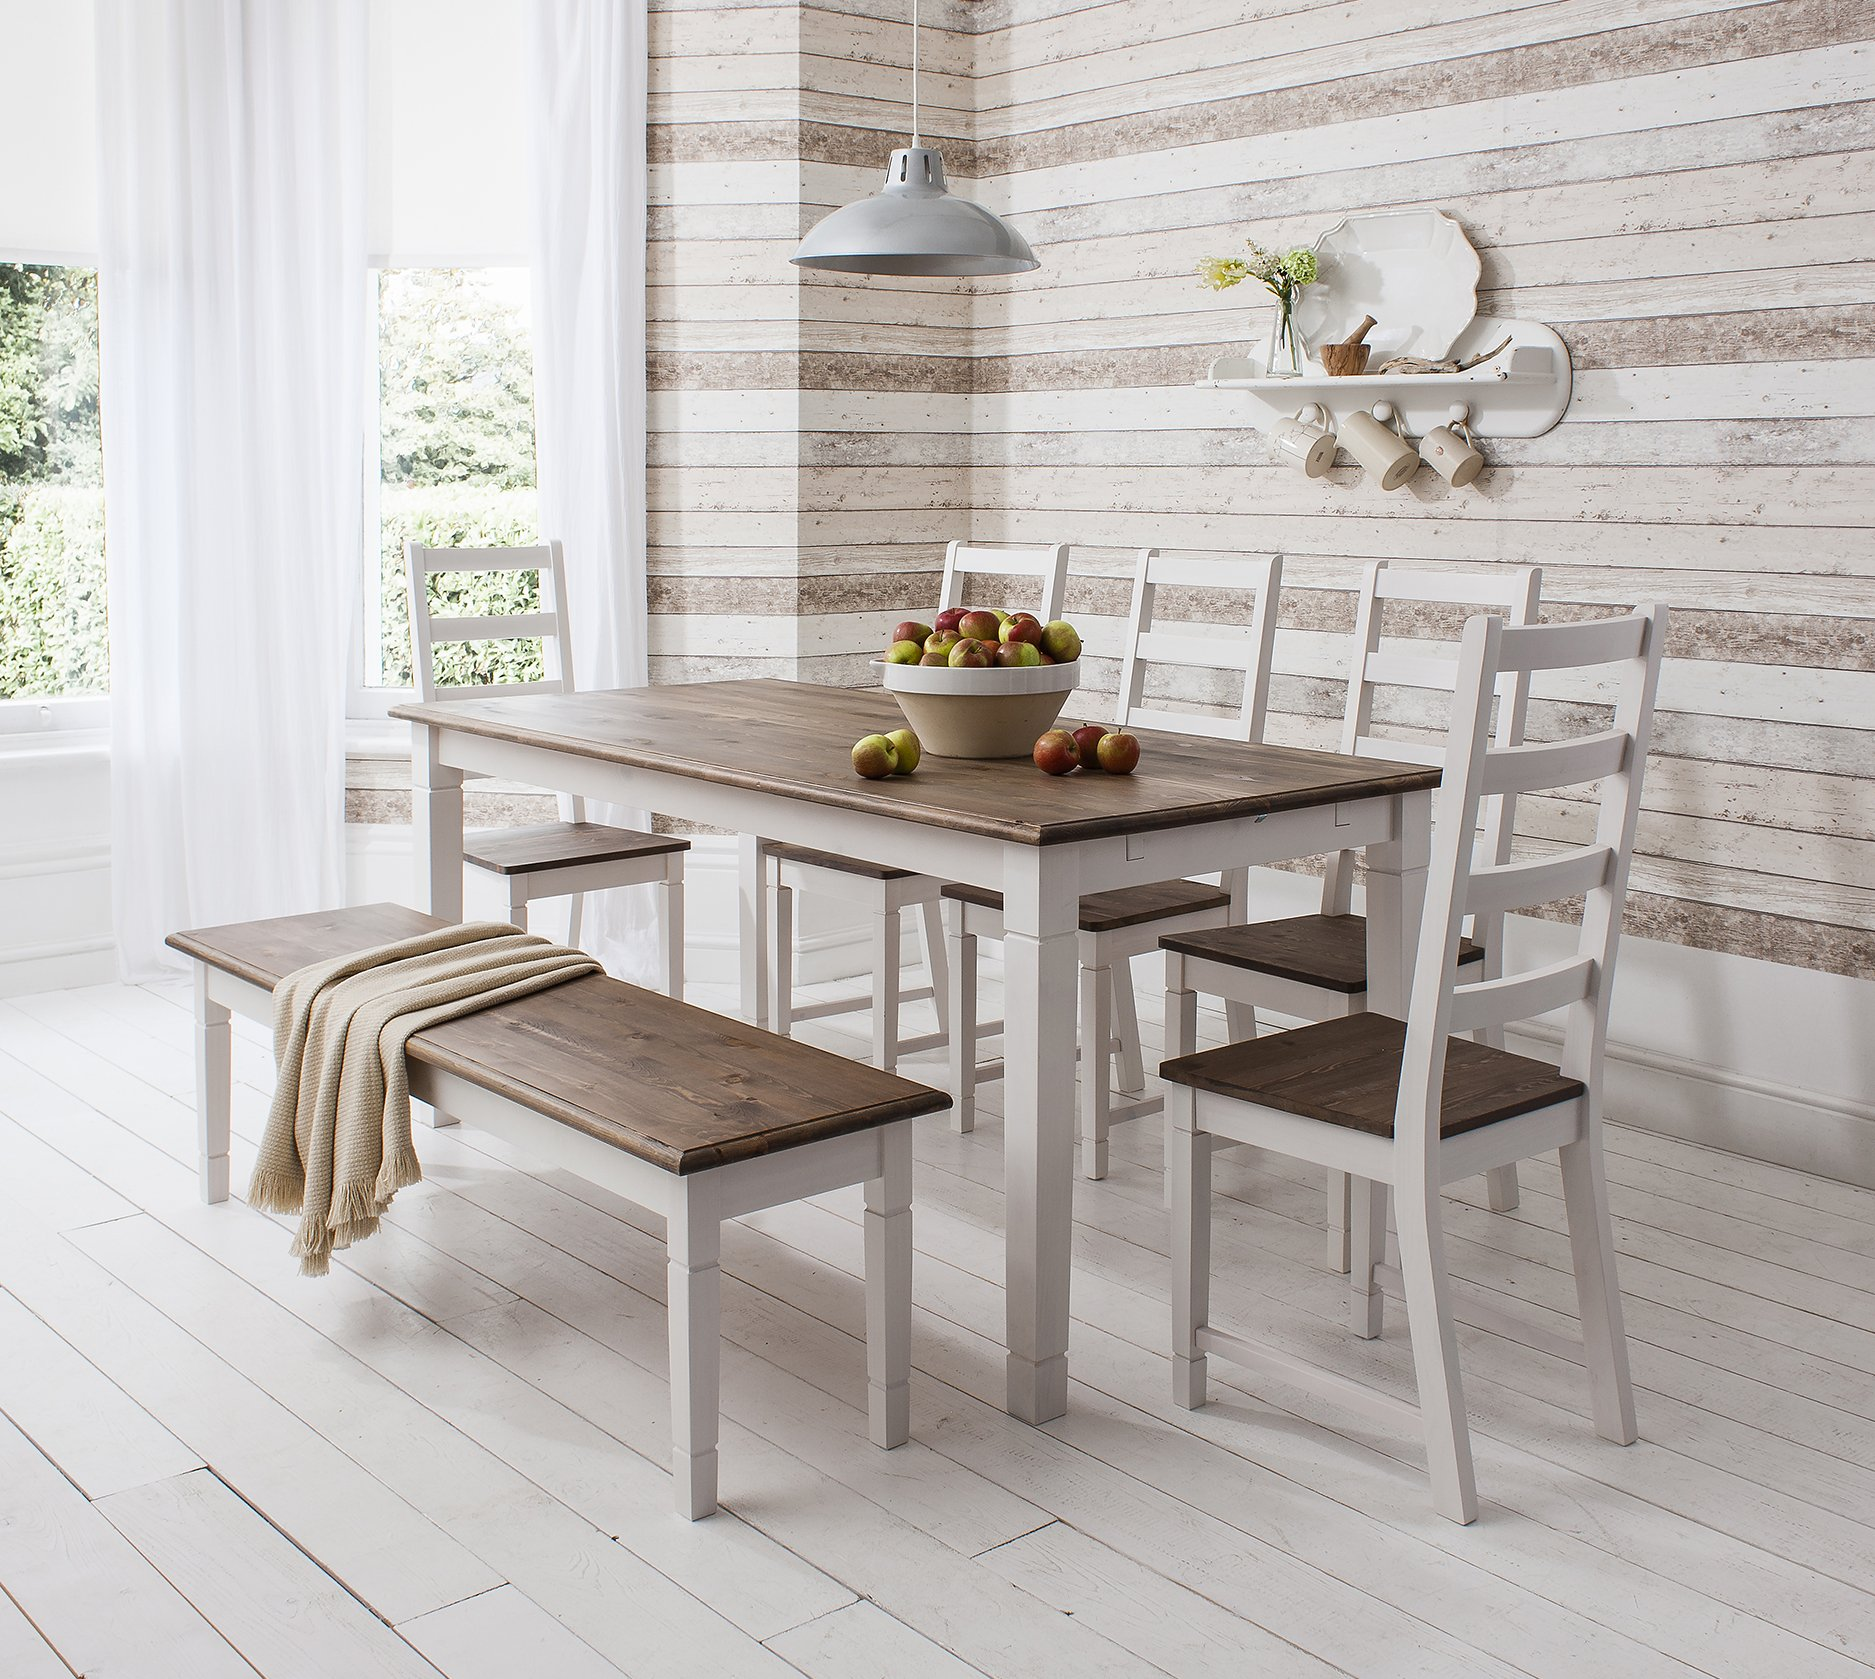 pine dining room table and chairs amazon co uk rh amazon co uk Metal Dining Table and Chairs Metal Dining Table and Chairs